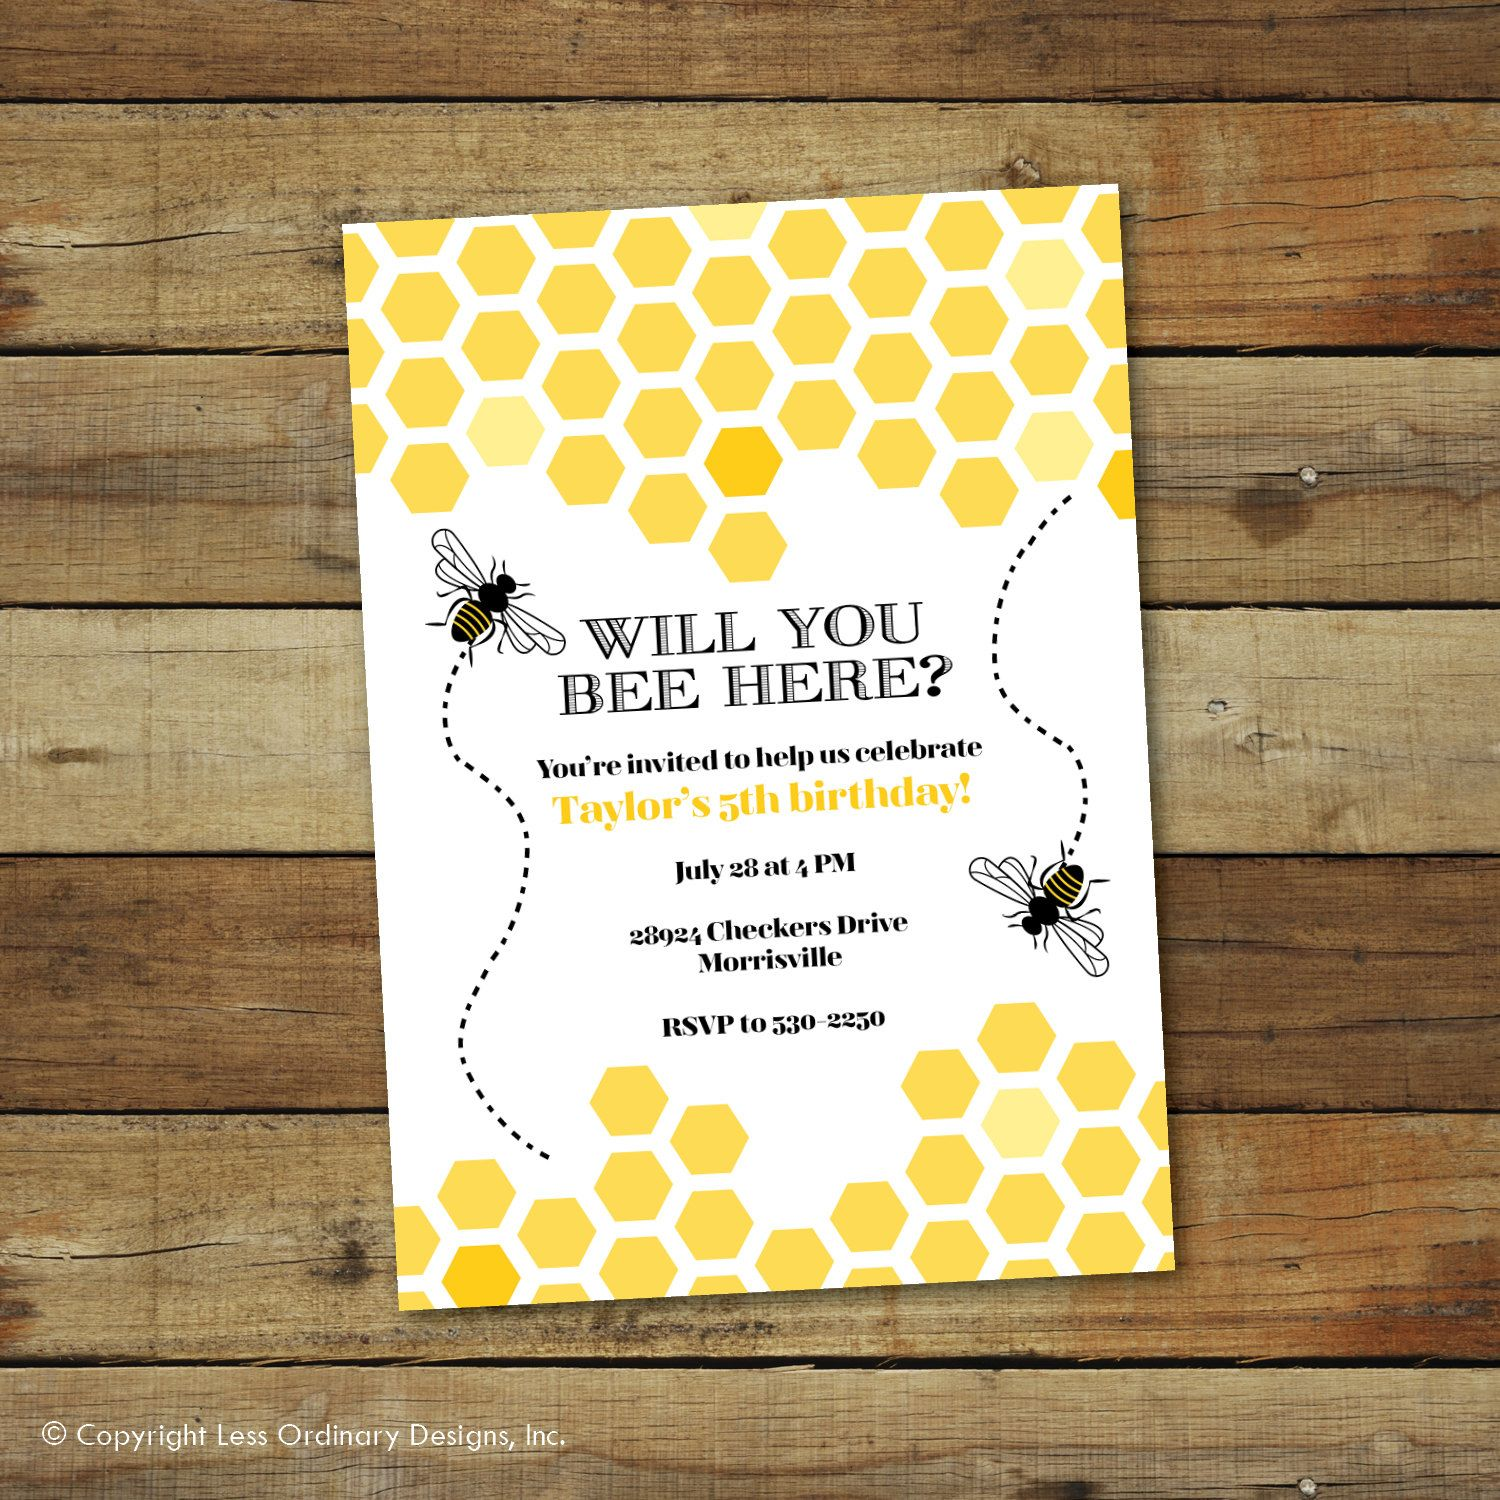 Bumble bee birthday party invitation bee hive birthday party theme bumble bee birthday party invitation bee hive birthday party theme yellow and black printable or printed bee birthday party invitation filmwisefo Images